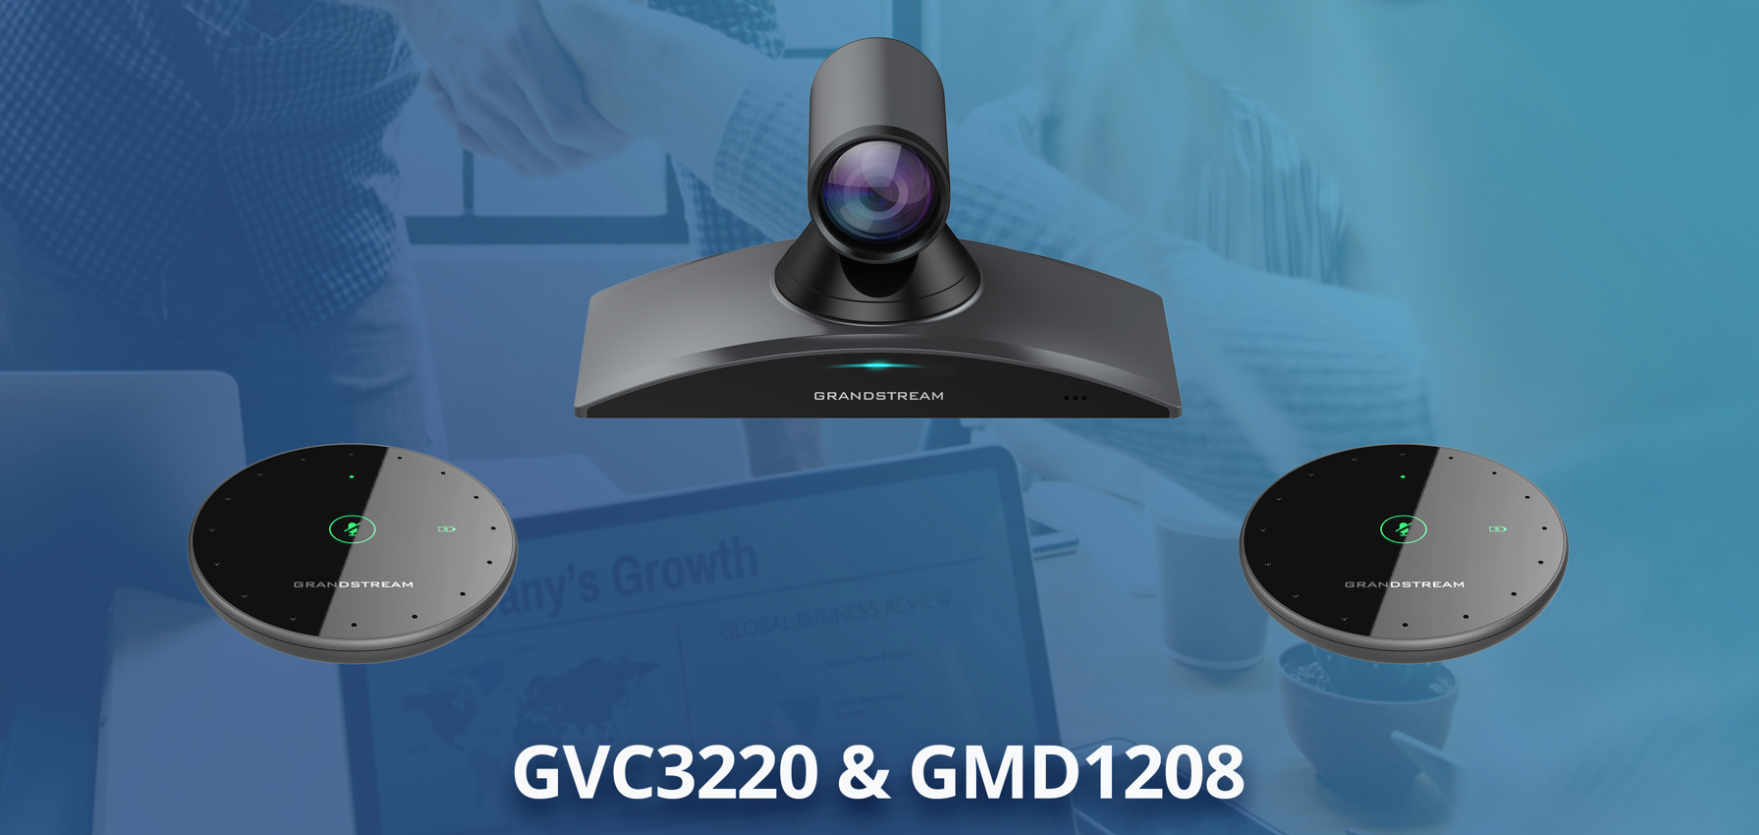 grandstream gvc3220 and gmd1208